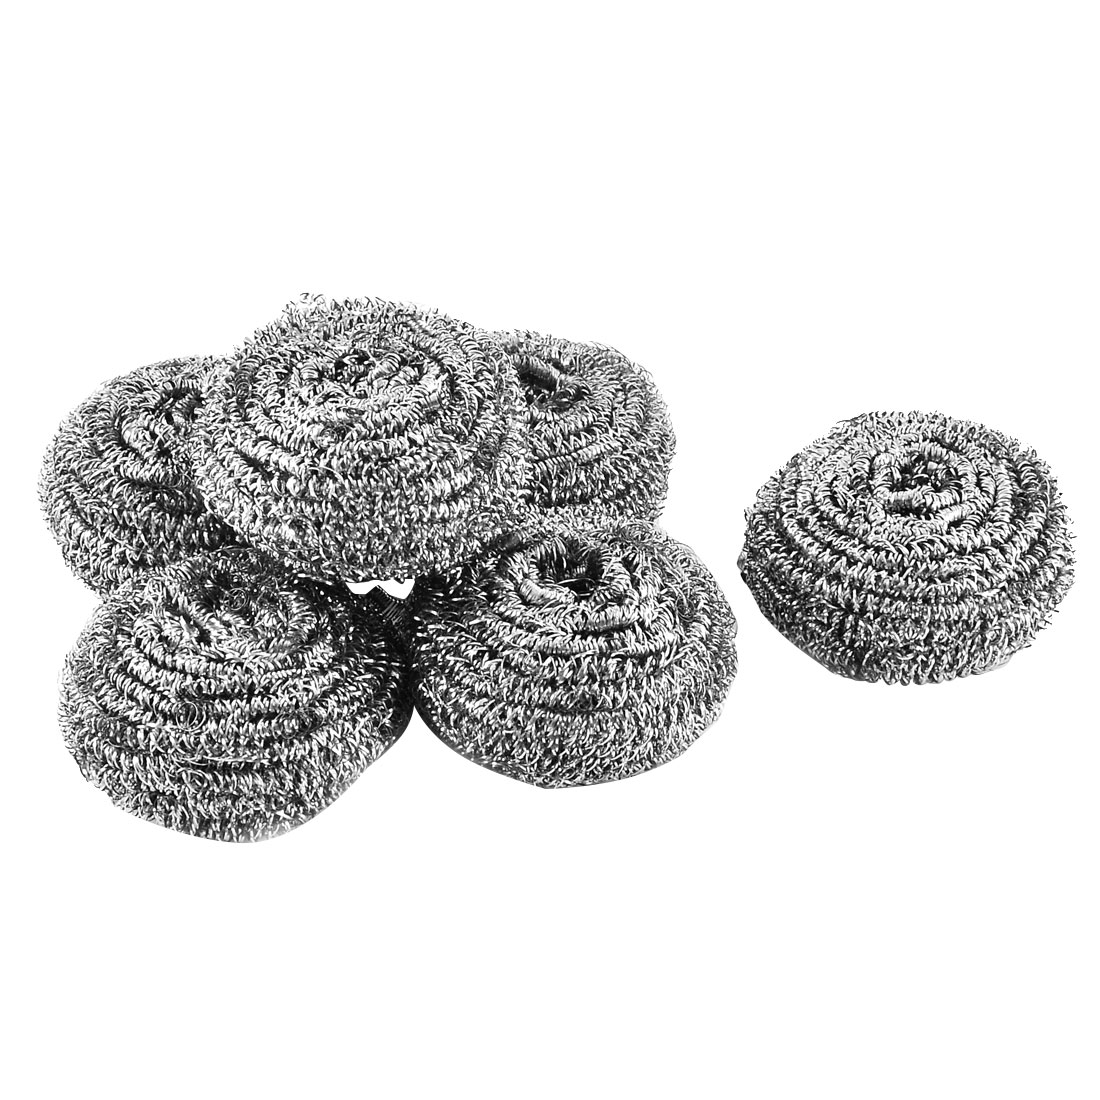 Kitchen Pot Pan Stainless Steel Wire Scouring Pad Scrubber 4cm Dia 6 Pcs